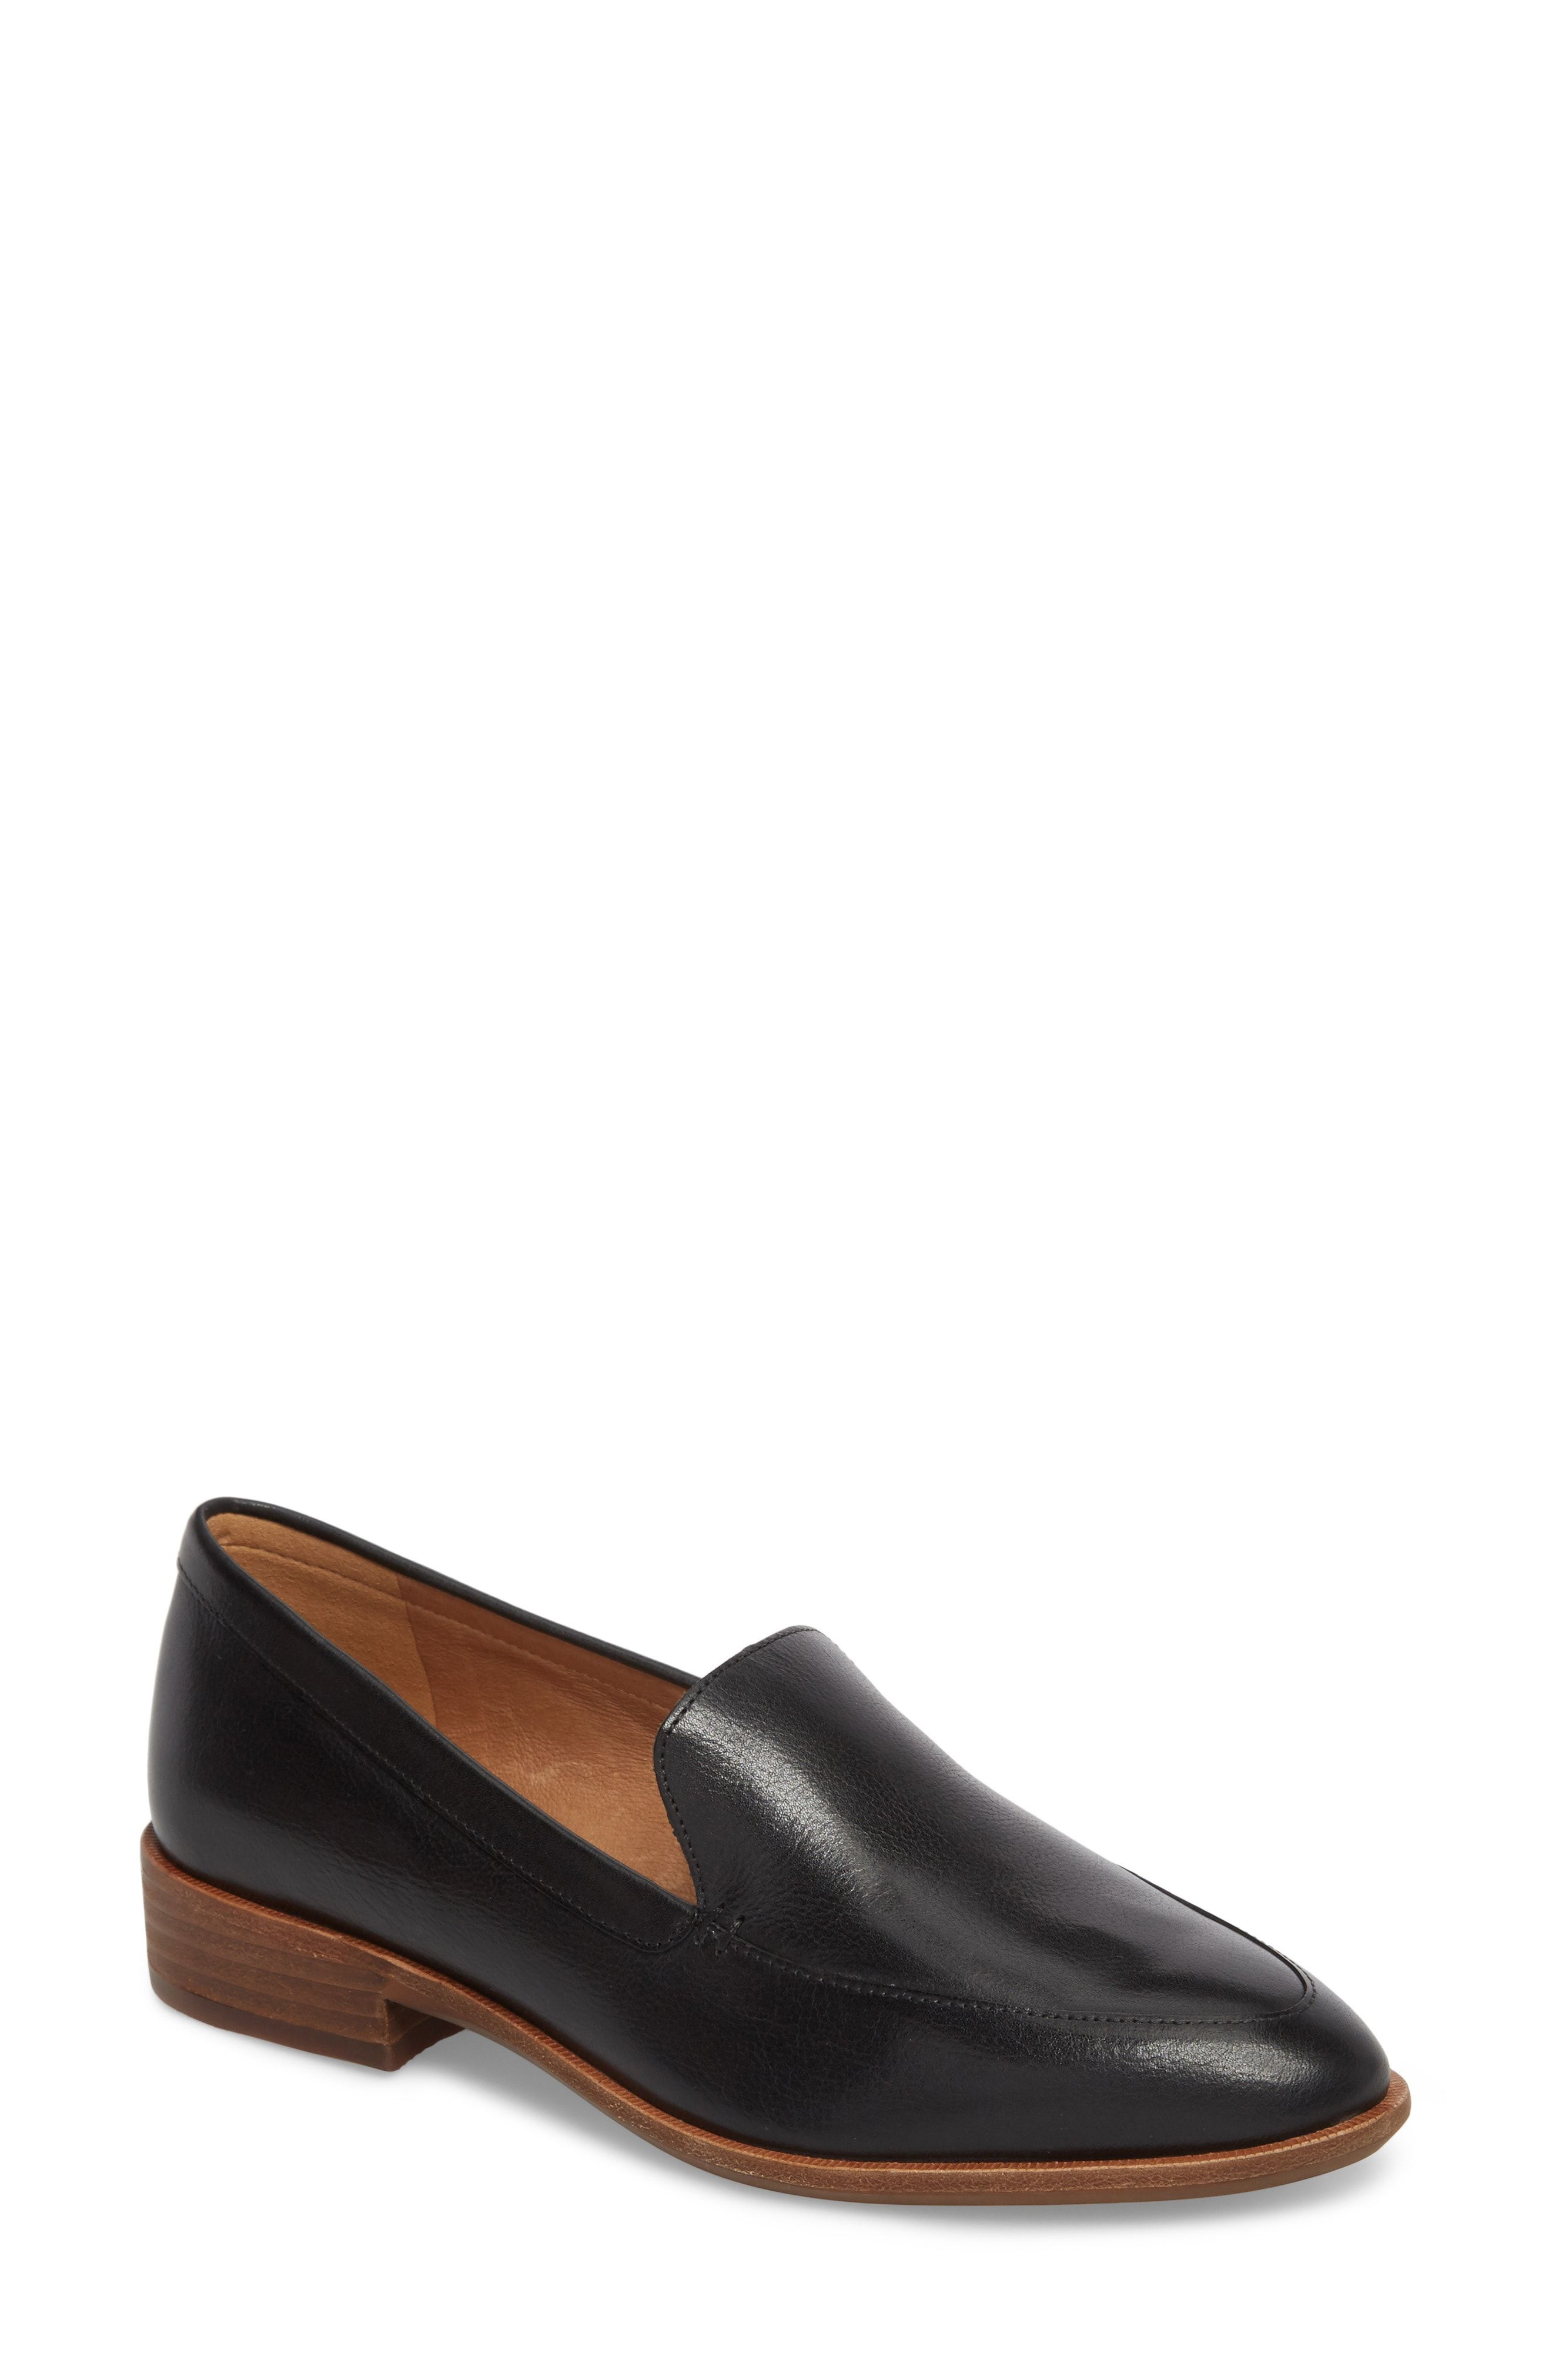 06ec60d791a Size 9 Madewell The Frances Loafer available at  Nordstrom in snake skin